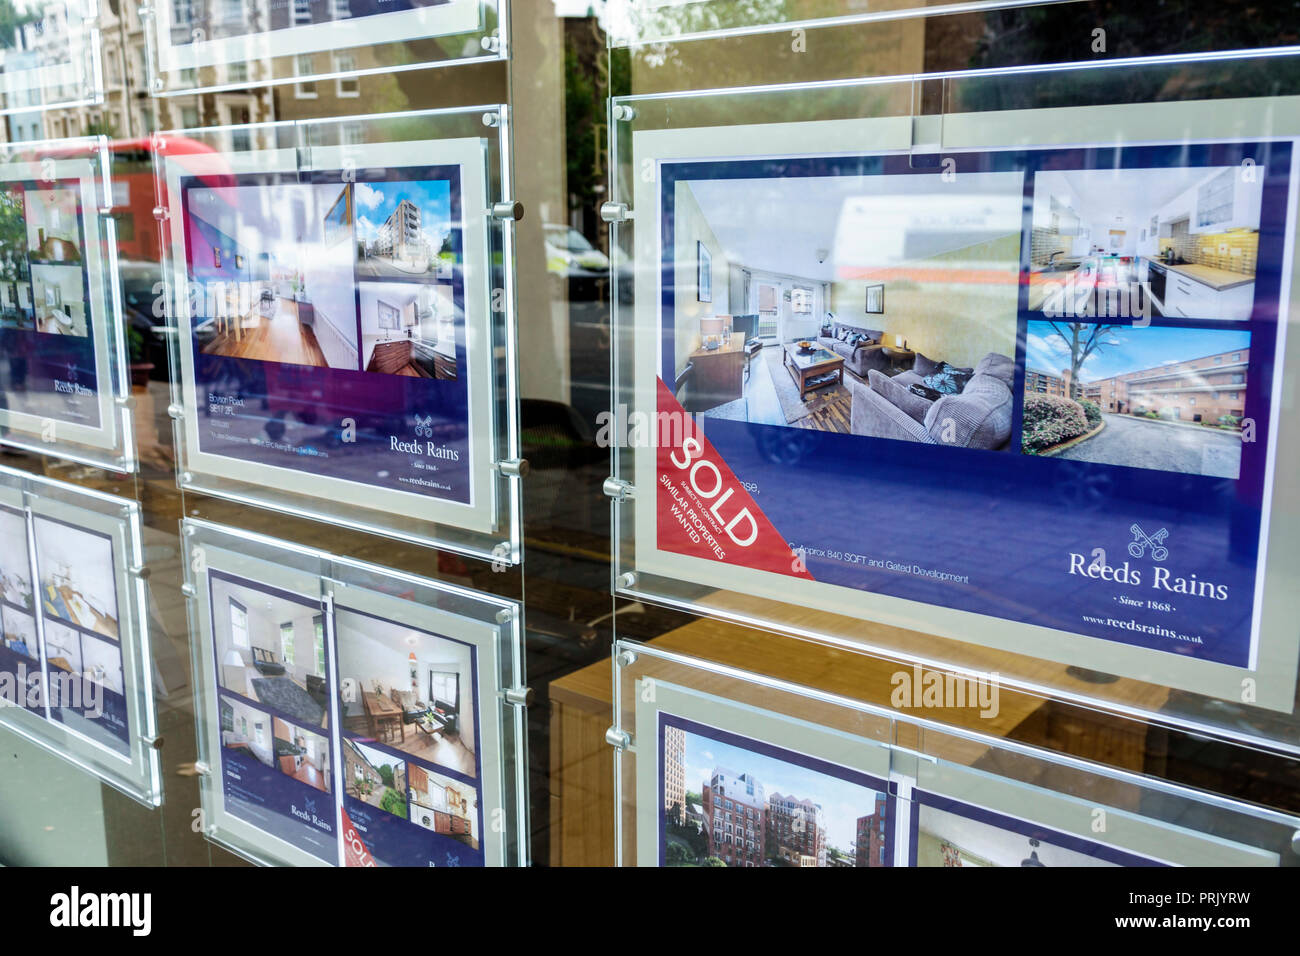 London England United Kingdom Great Britain Lambeth North Kennington Road Reeds Rains real estate office flats apartments for sale sold window display - Stock Image